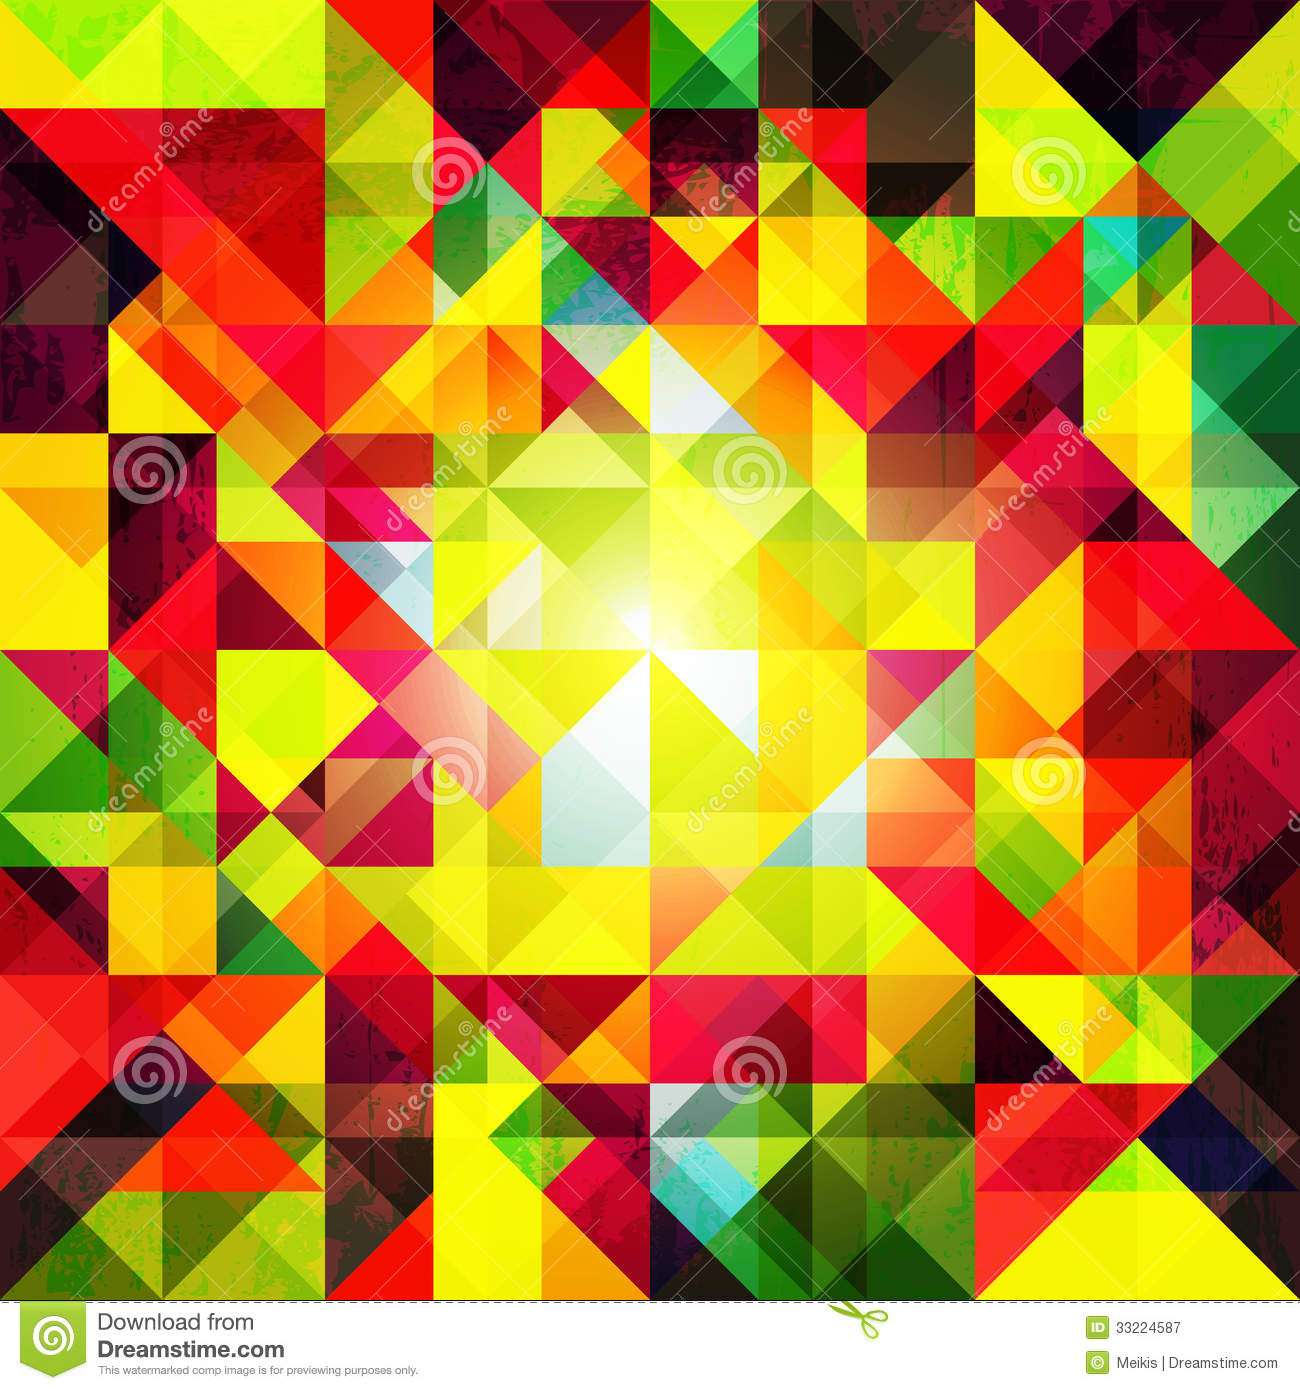 Free Colorful Geometric Wallpaper: Abstract Colorful Geometric Grunge Background Stock Vector